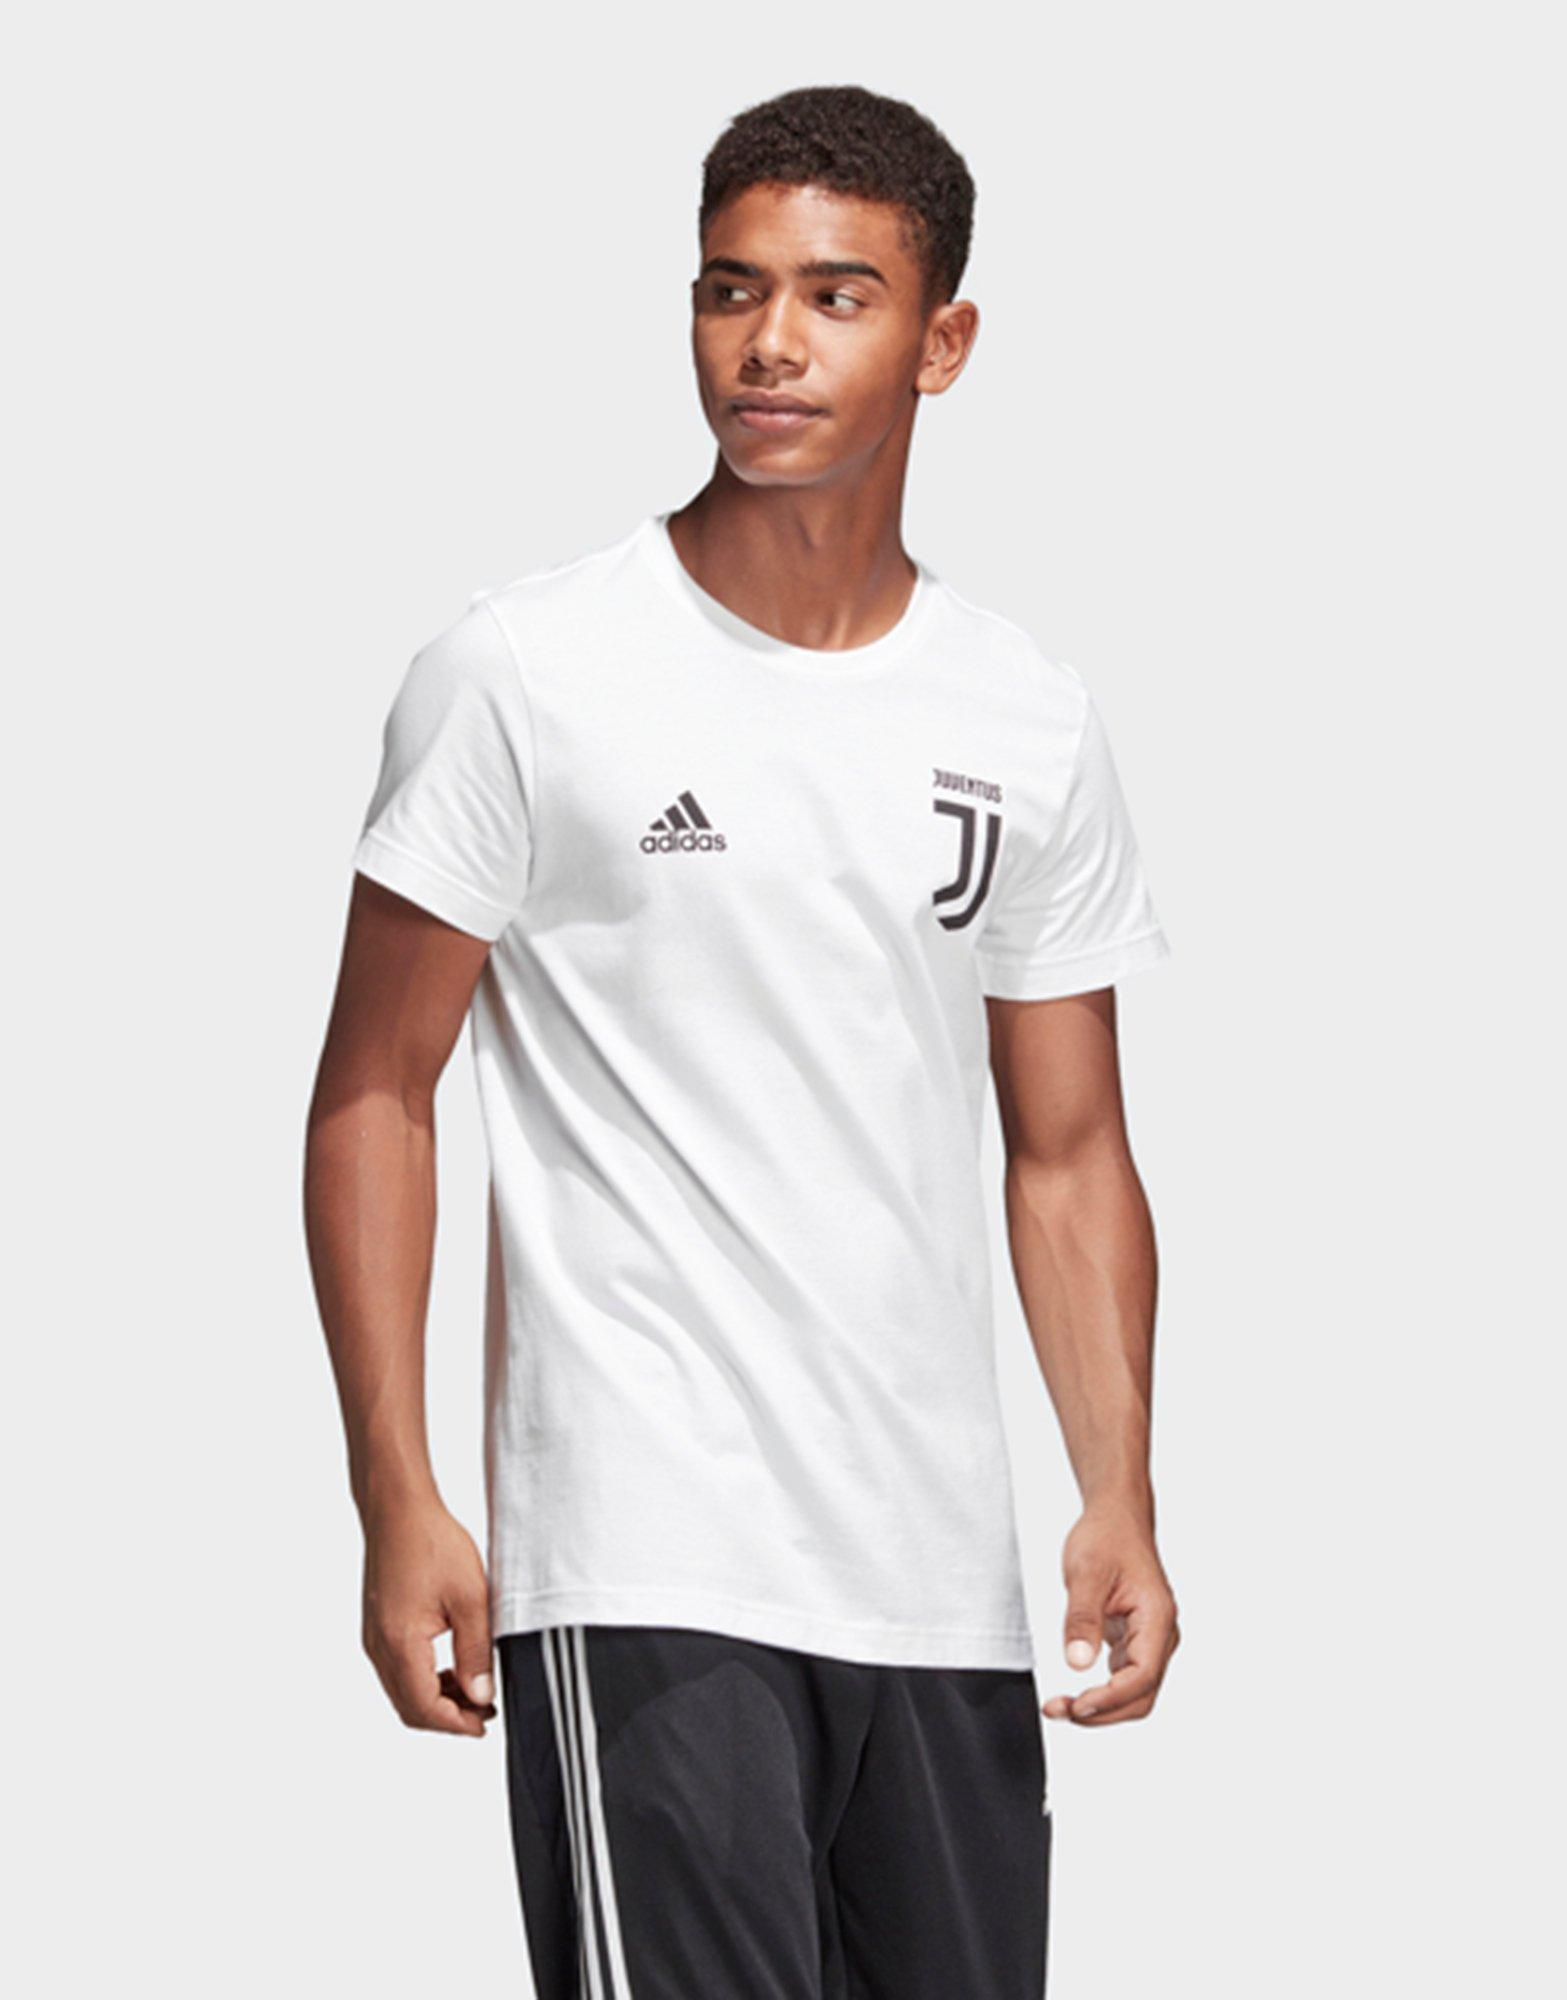 fe4900742ad Adidas Juventus Turin Graphic T-shirt in White for Men - Lyst